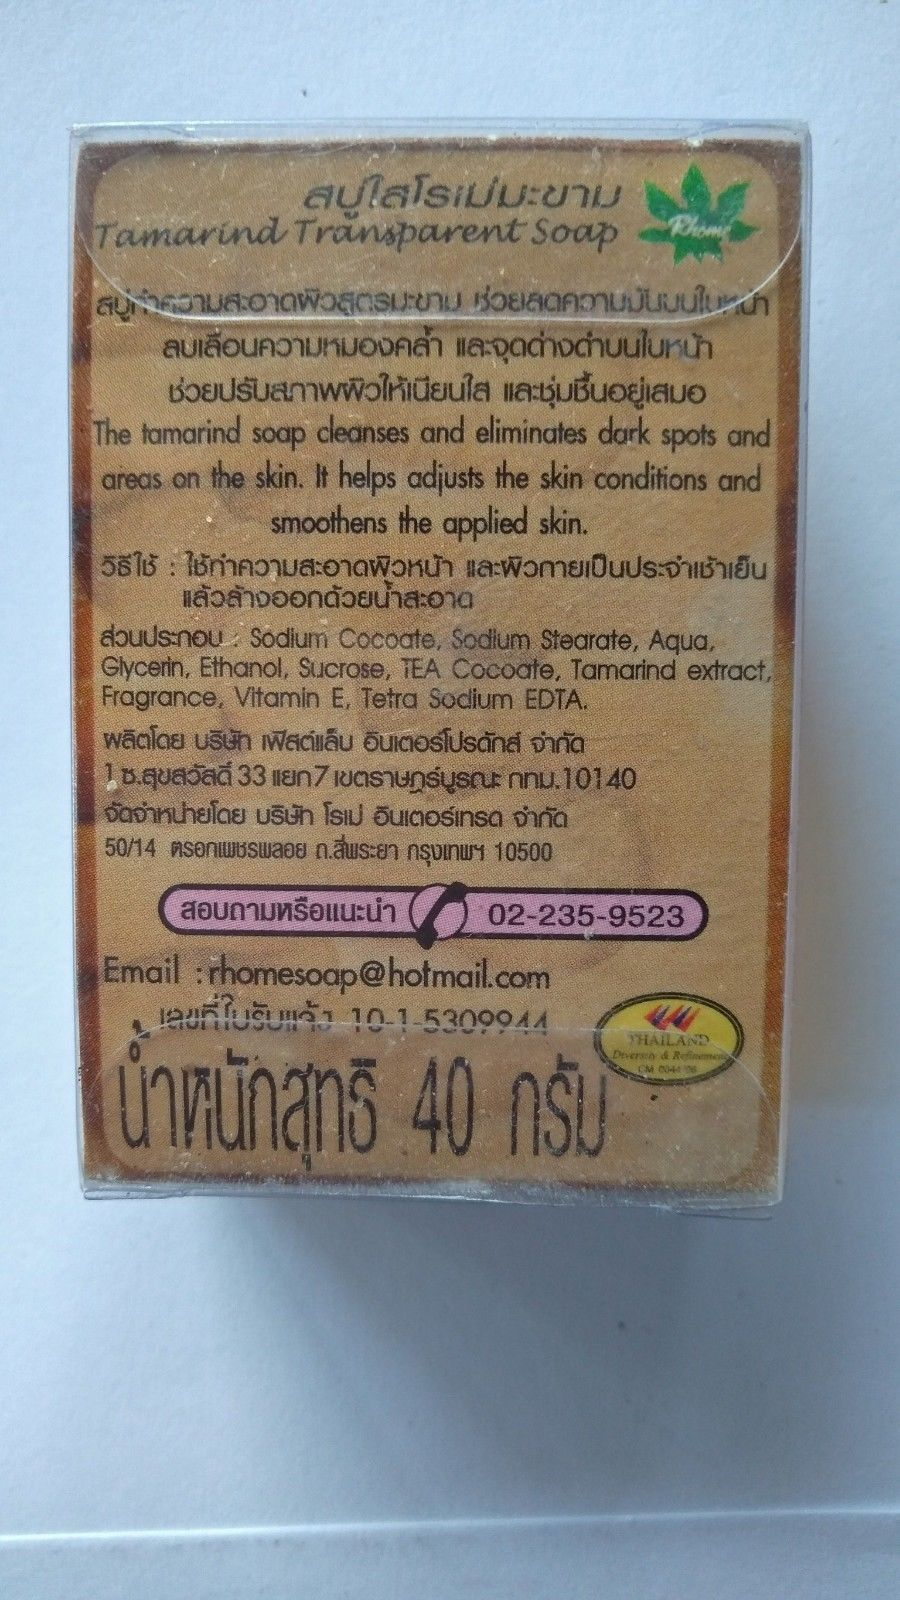 6x40g. Rhome Tamarind Transparent Soap Nourish Skin Reduce Dark Spots & Freckles